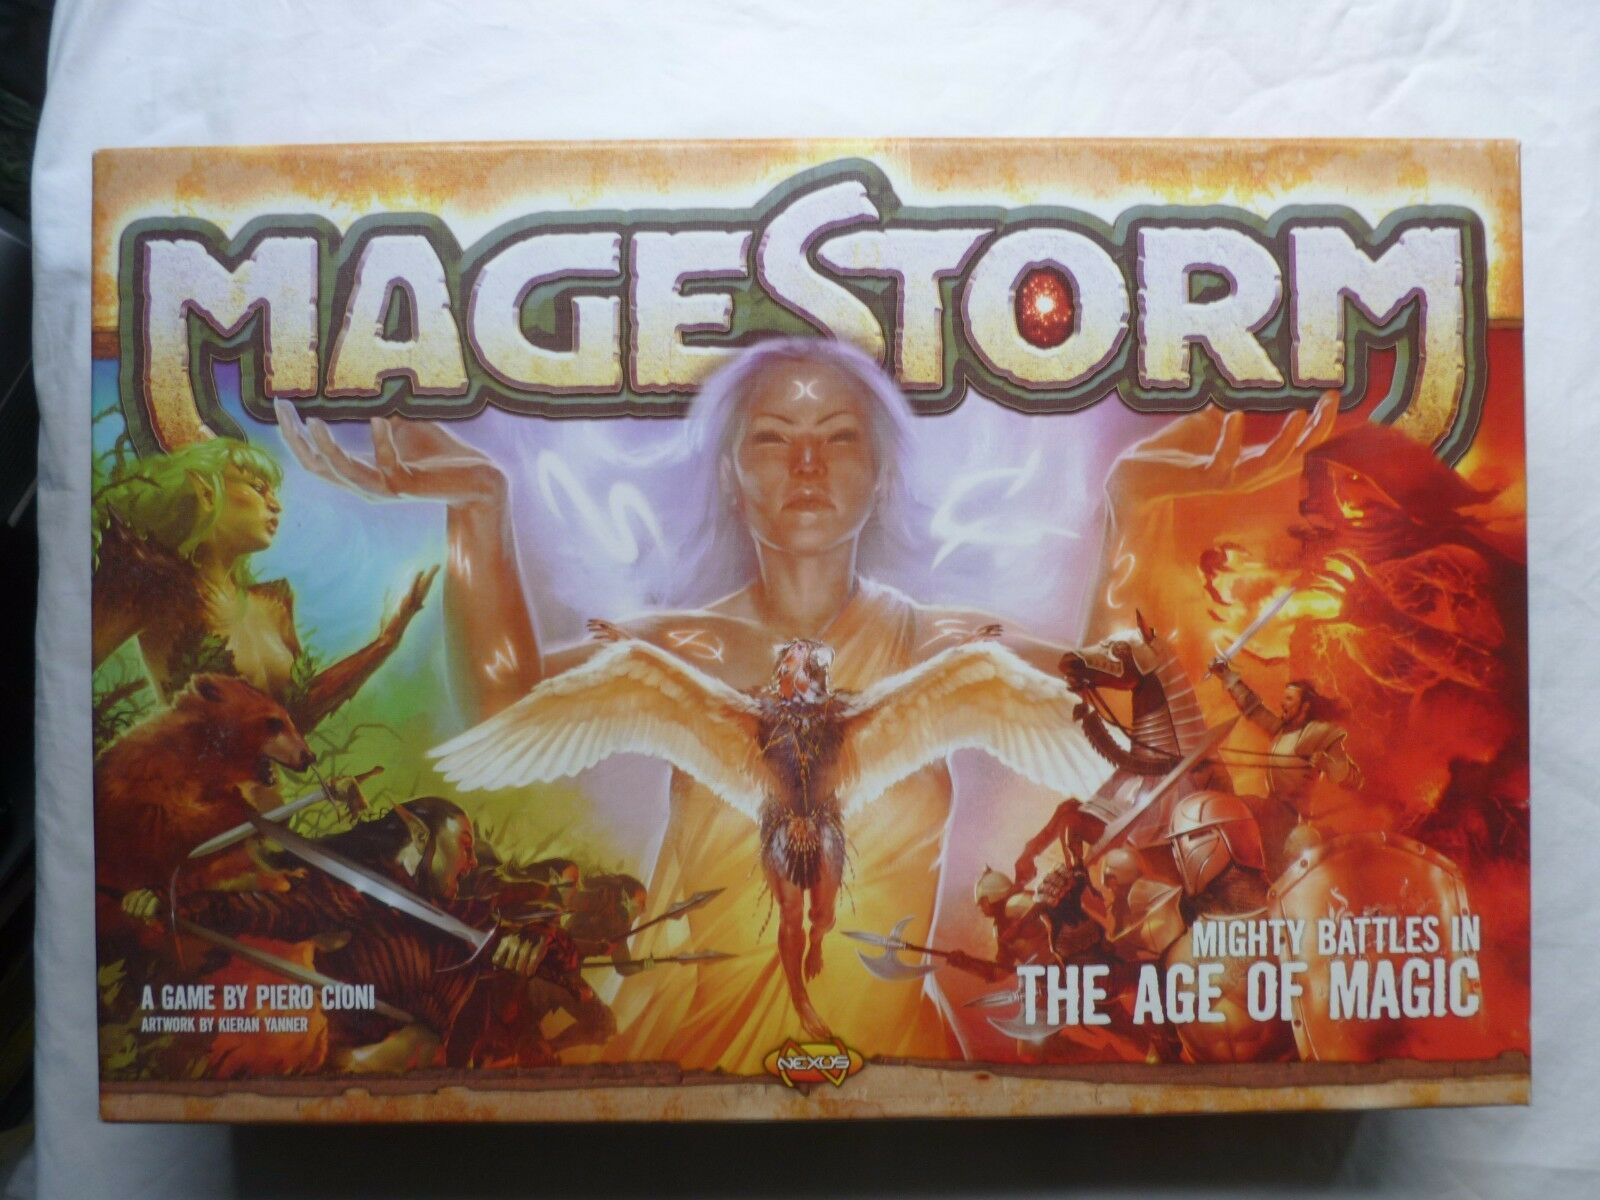 Mage Storm  Mighty Battles In The Age Of Magic  Magestorm strategy board game